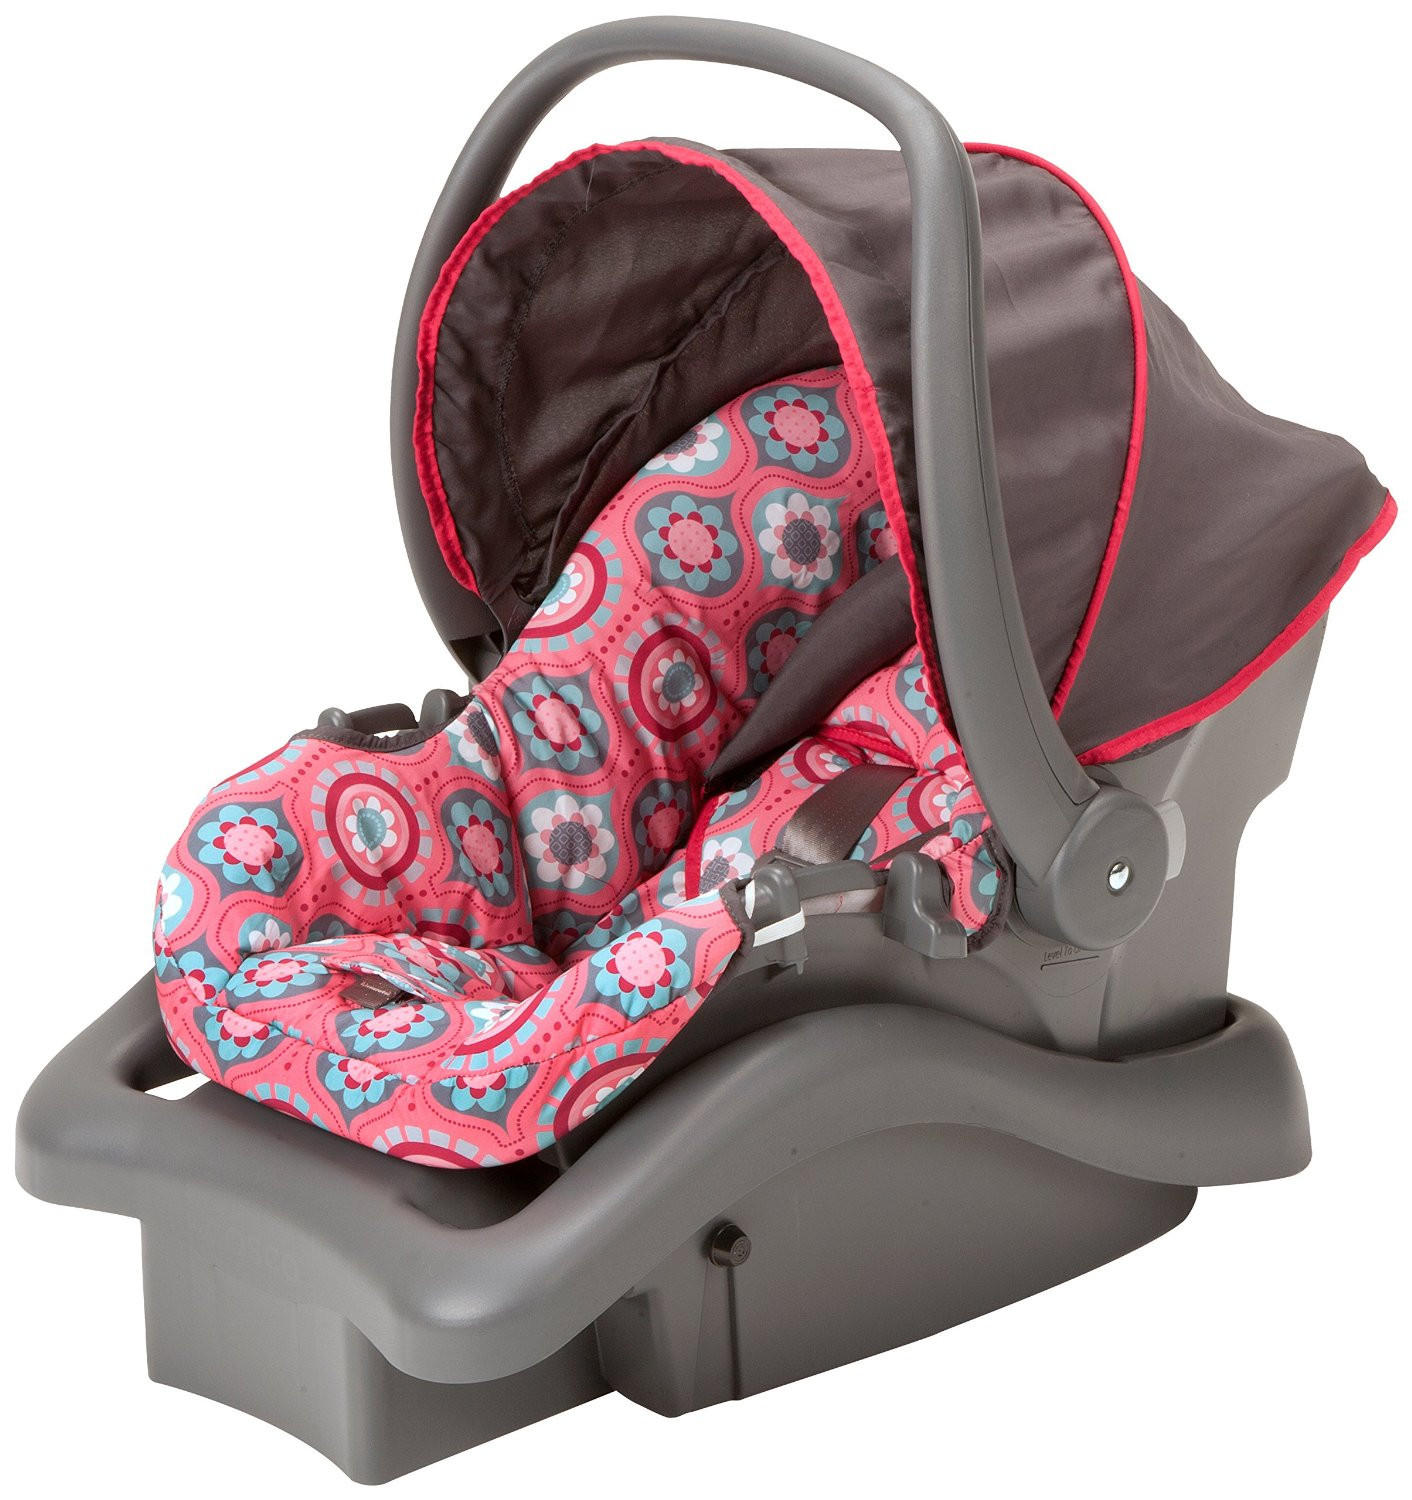 Stores To Buy Car Seats